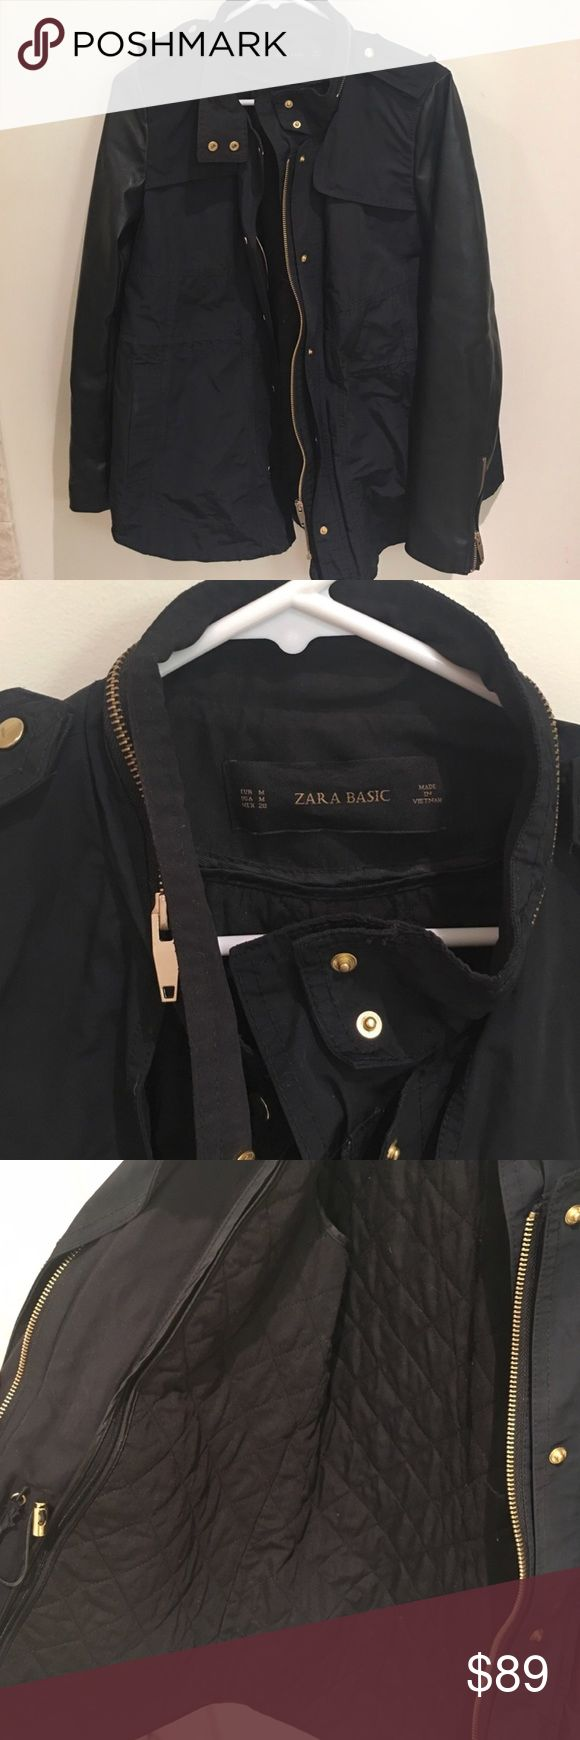 Trendy Zara jacket worn once! Trendy Zara jacket, only worn one time! Only selling because it's too small on me. Has gold detailing, faux leather sleeves, and removable lining! Size medium! Comes from smoke free home. No hood. Zara Jackets & Coats Utility Jackets